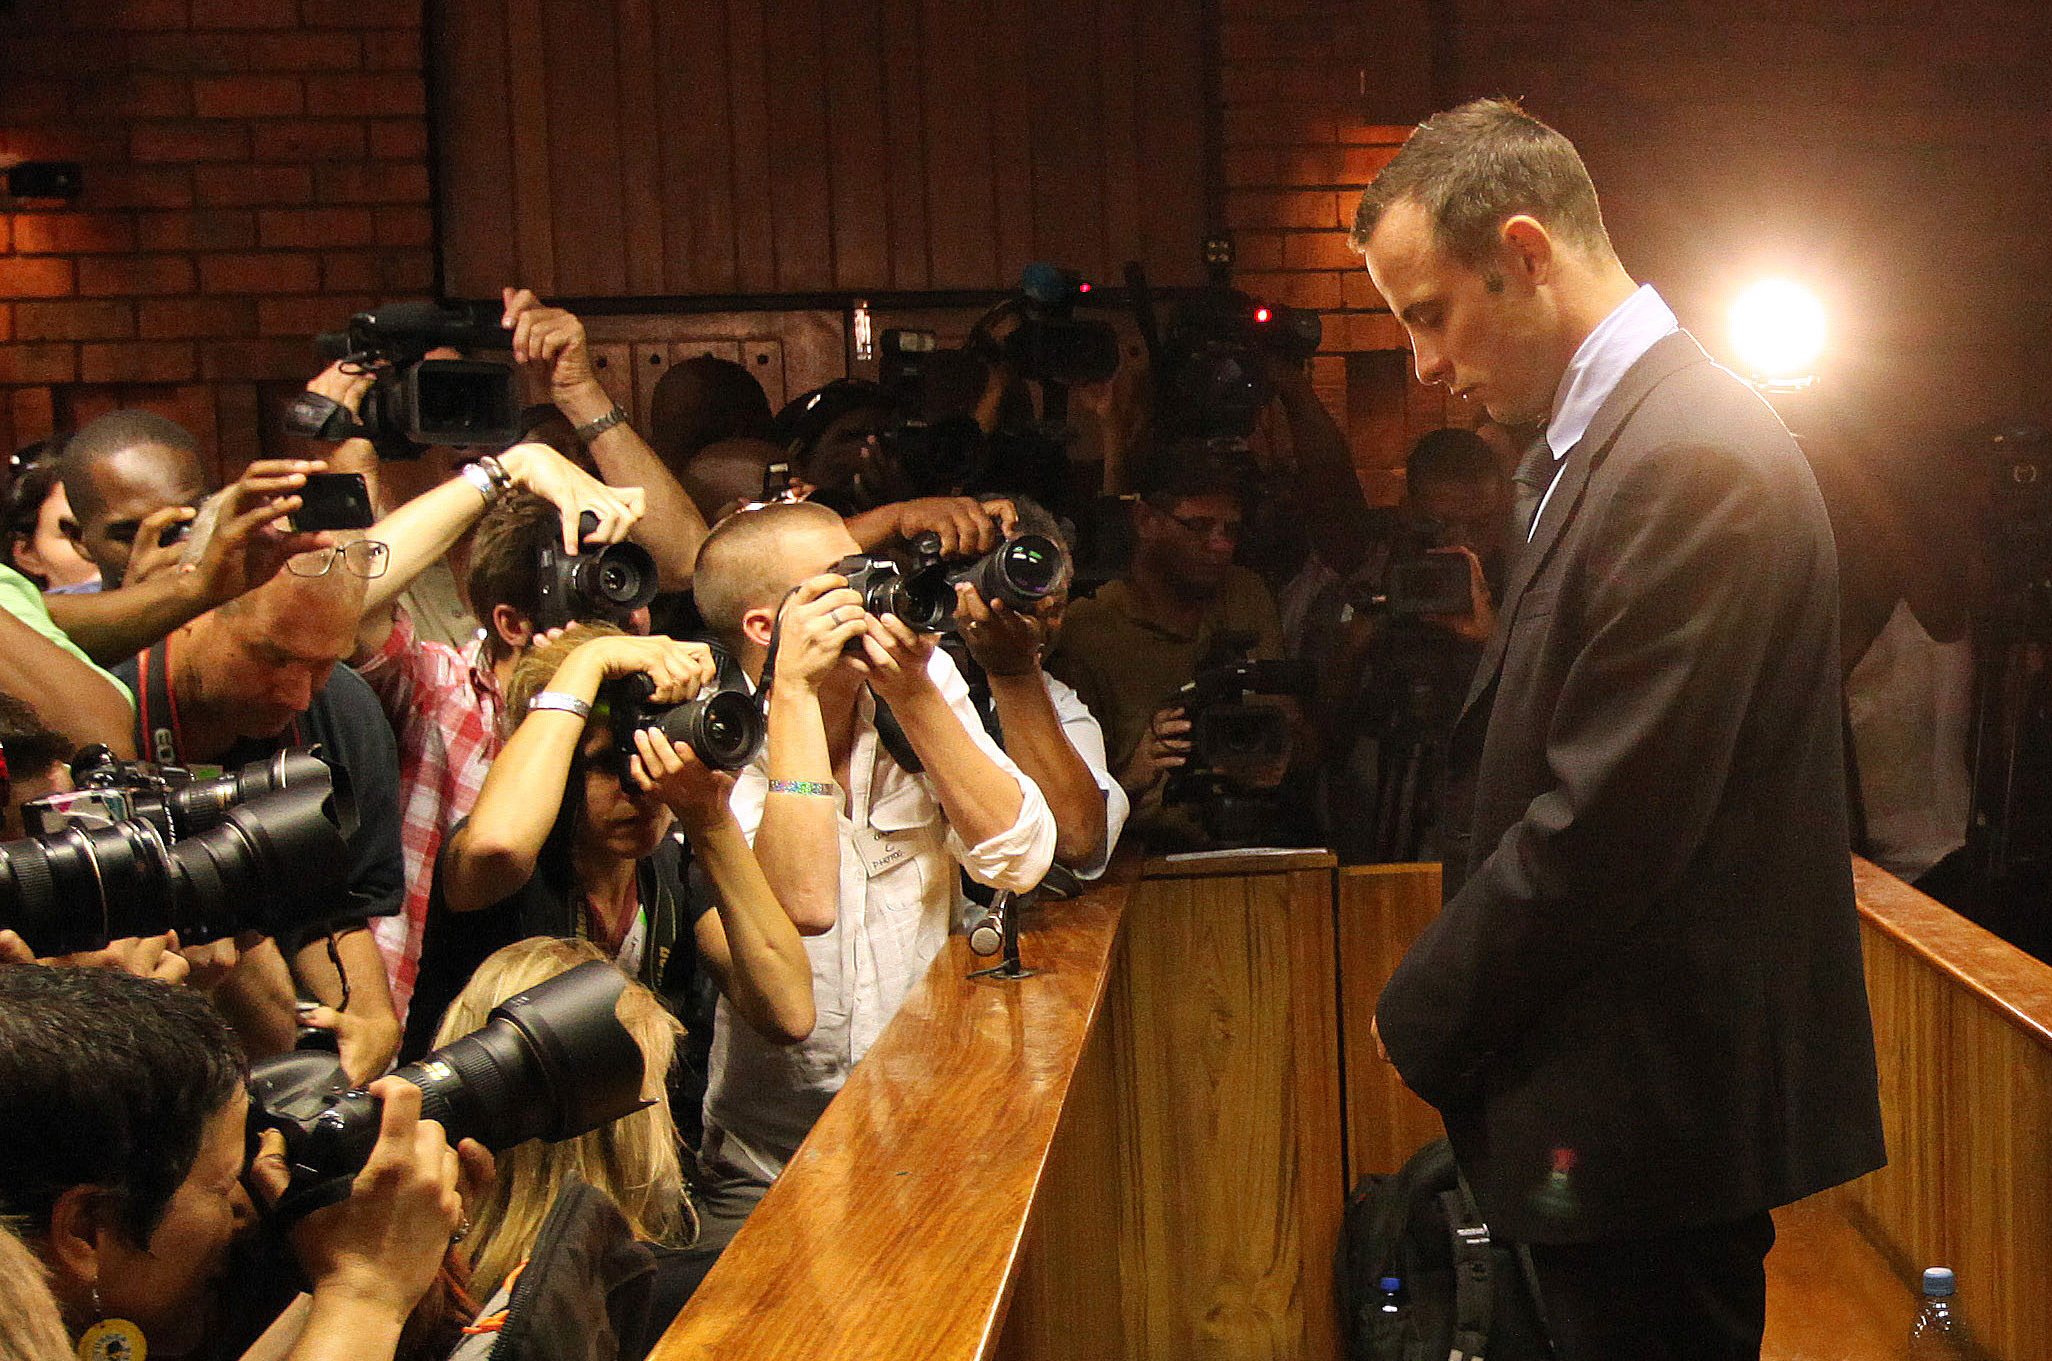 Oscar Pistorius stands in the dock during his bail hearing. (AP)